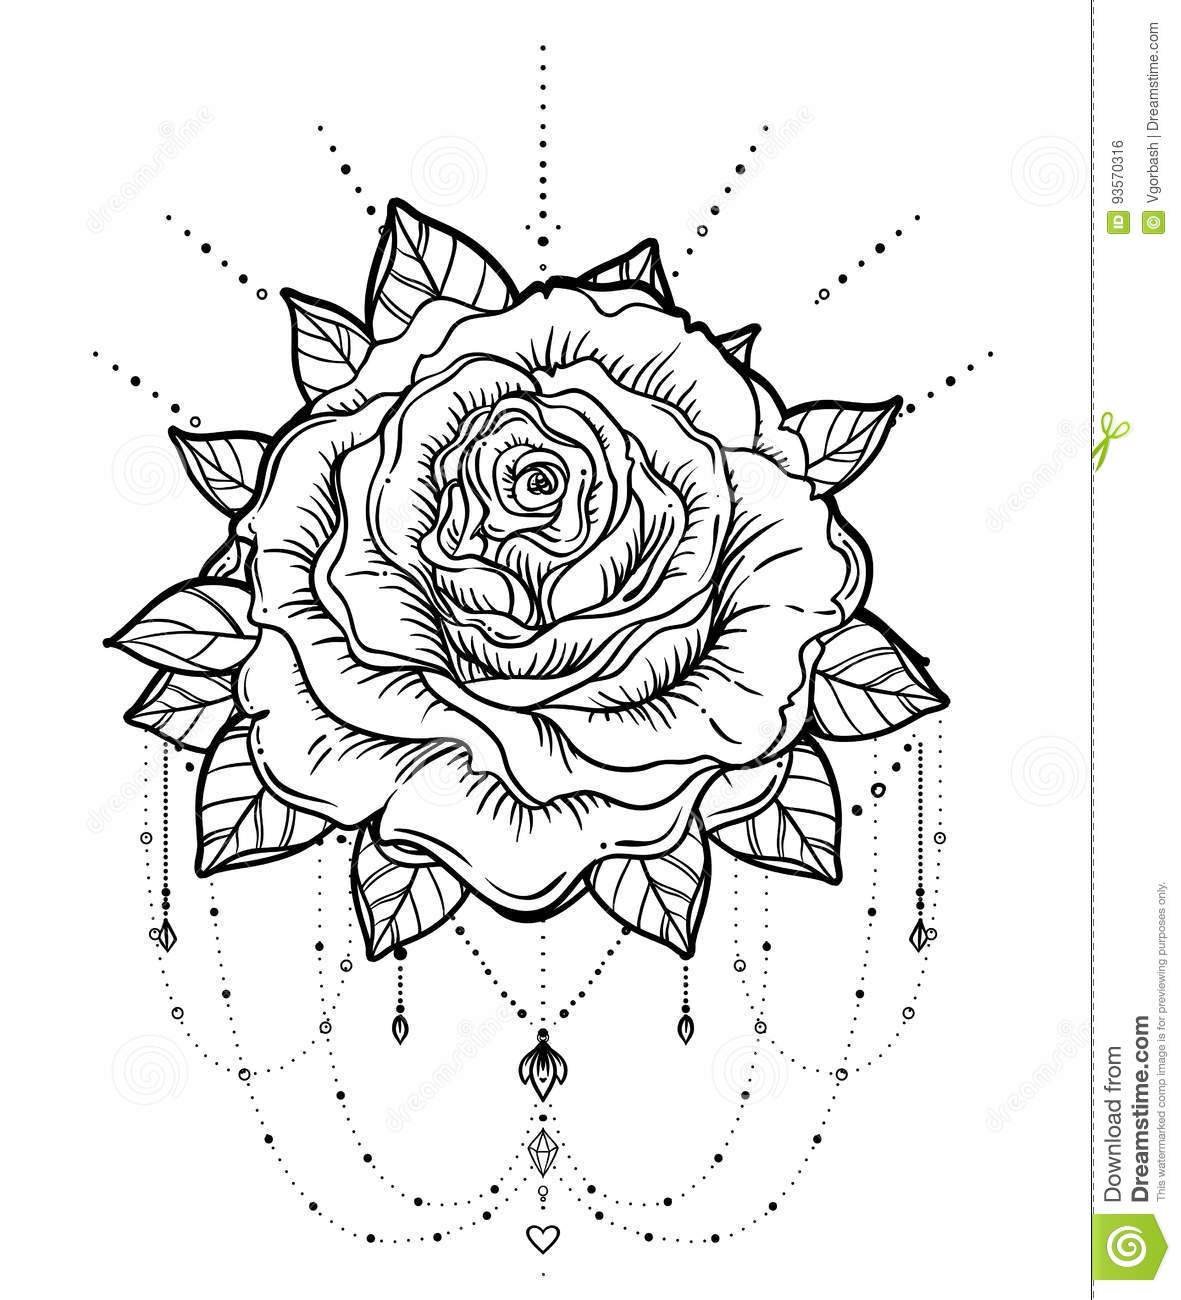 Dream Catcher With Rose Flower Detailed Vector